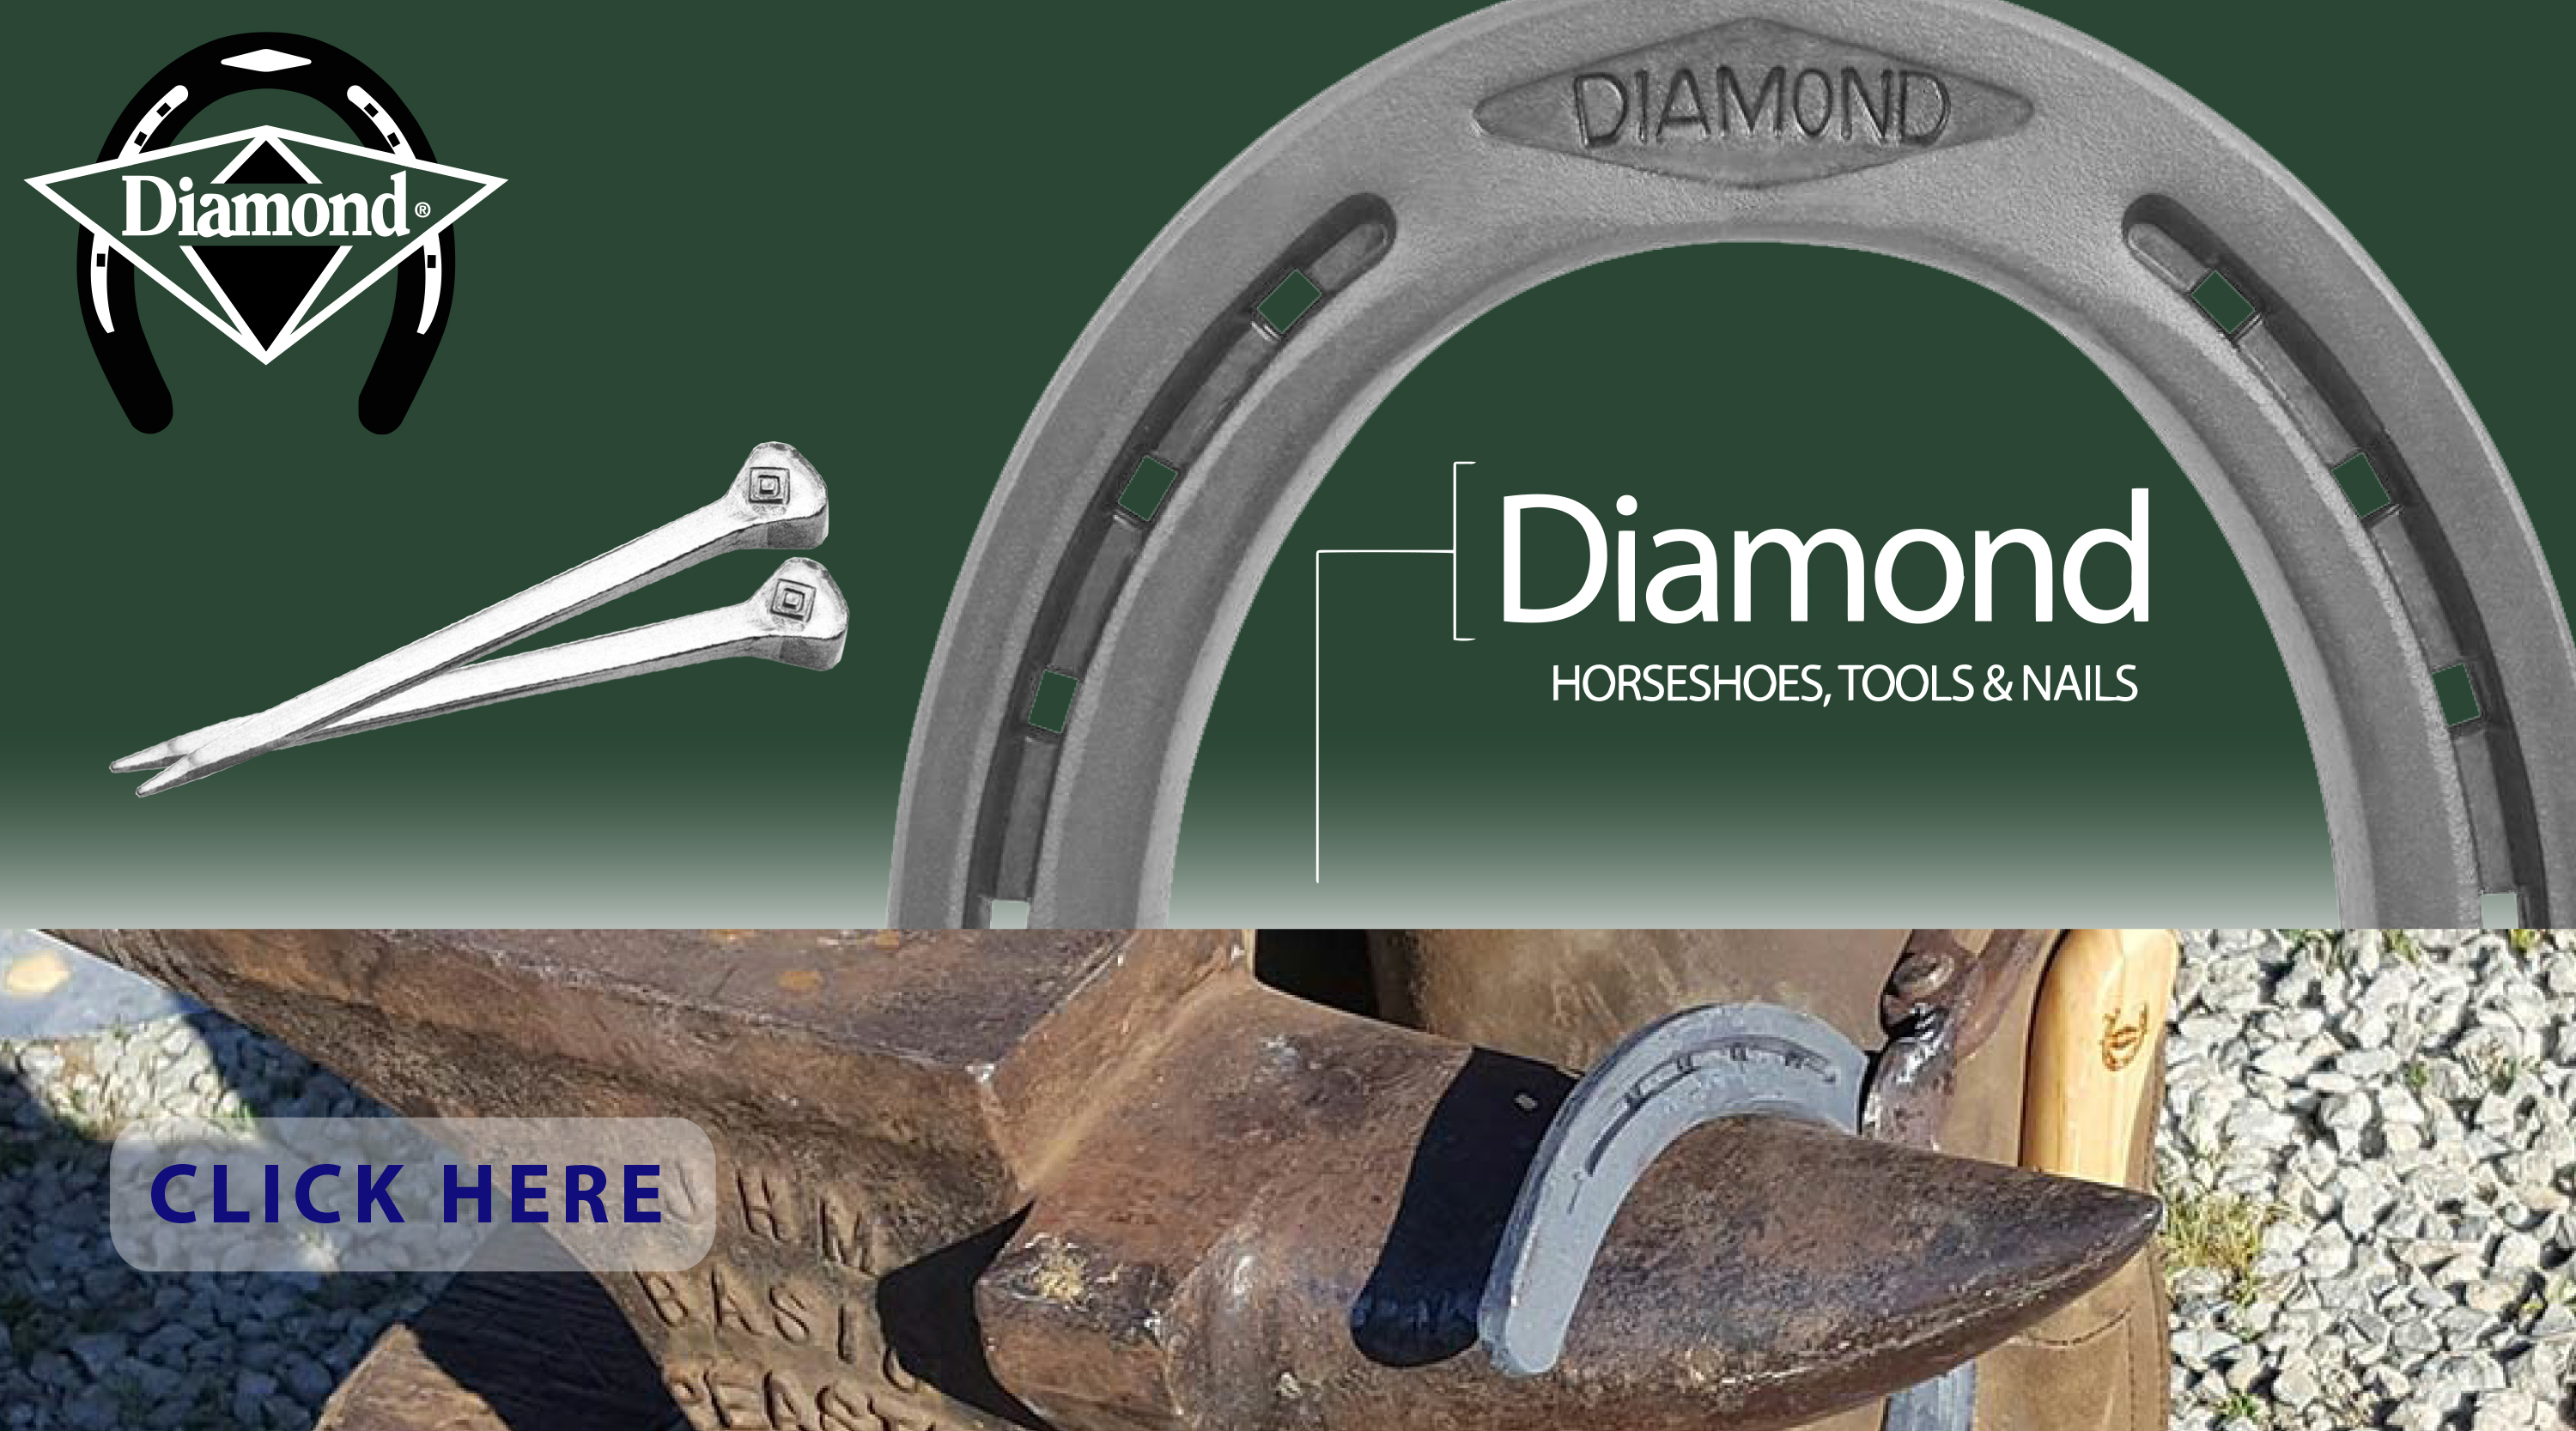 Coming soon at JACKS – Diamond Farrier Products